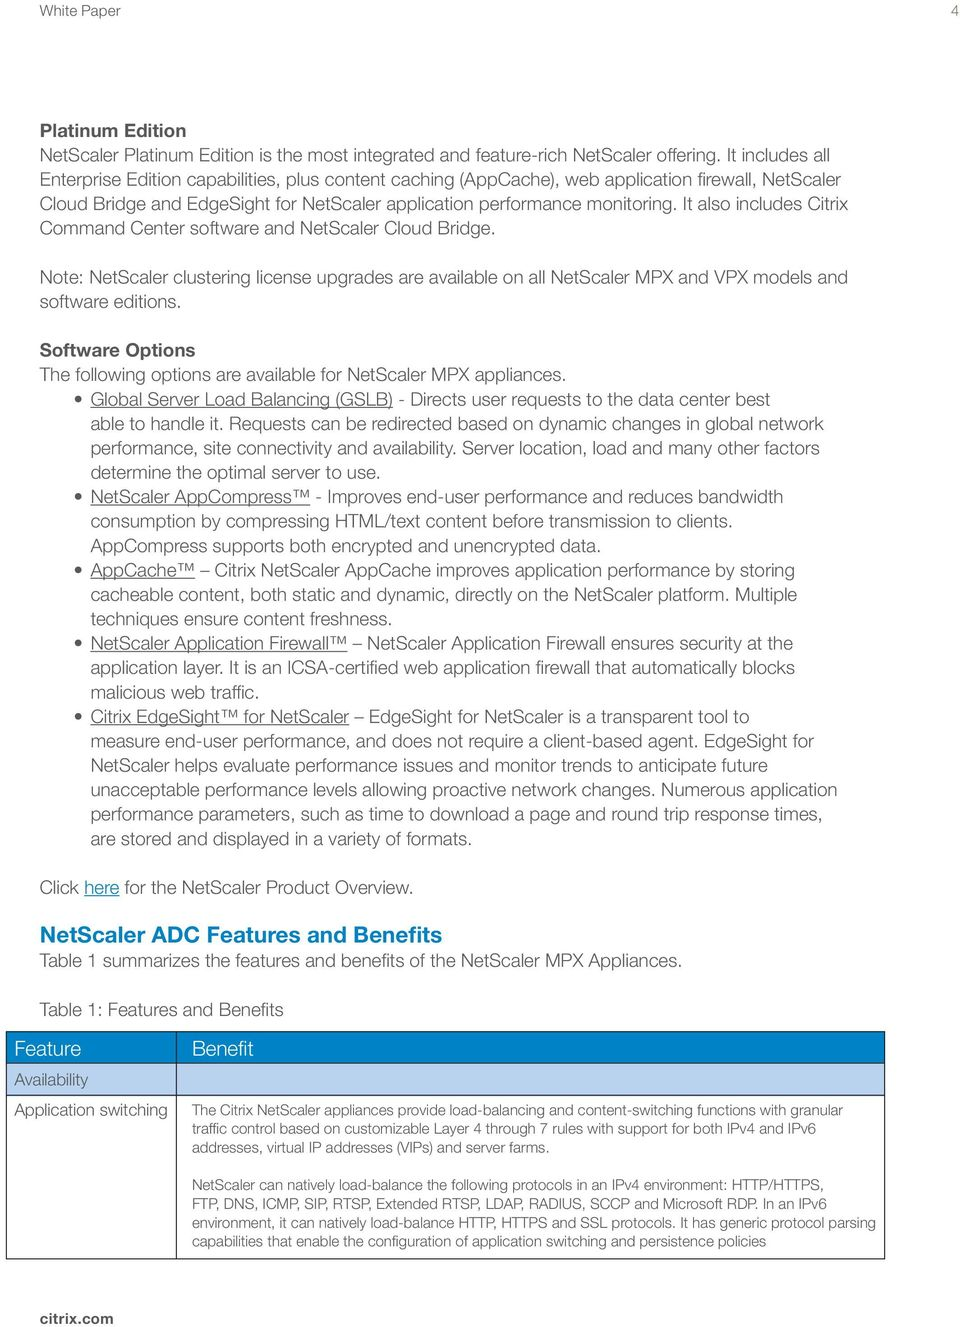 White Paper  Citrix NetScaler Deployment Guide - PDF